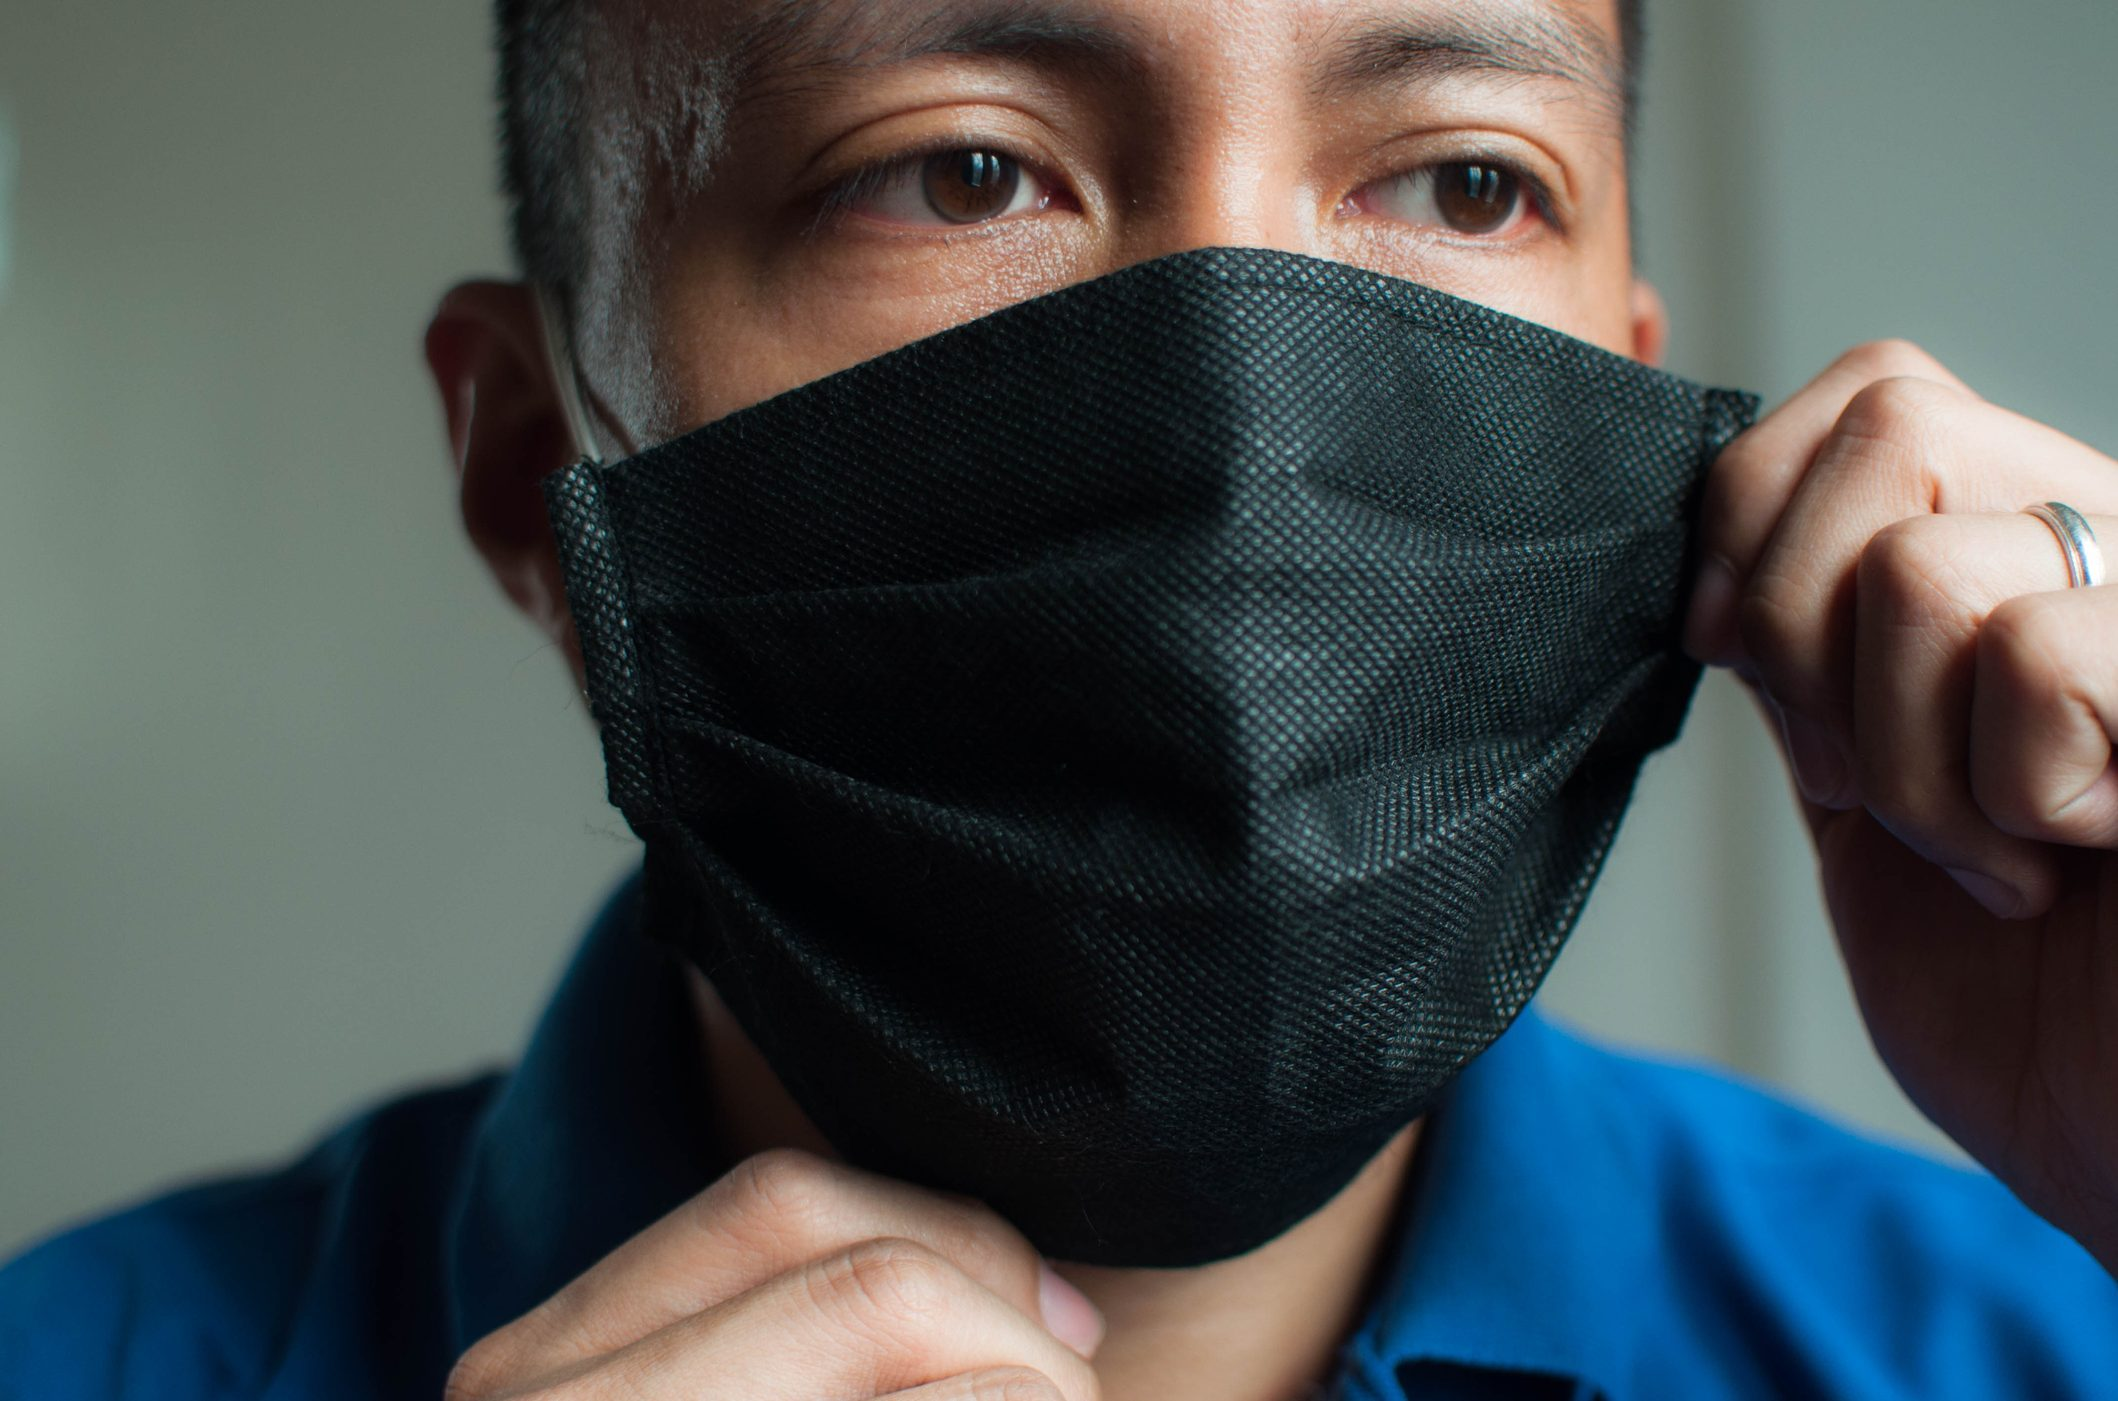 """A young Southeast Asian man is wearing a black protective face mask during the """"new normal"""" in coronavirus pandemic"""